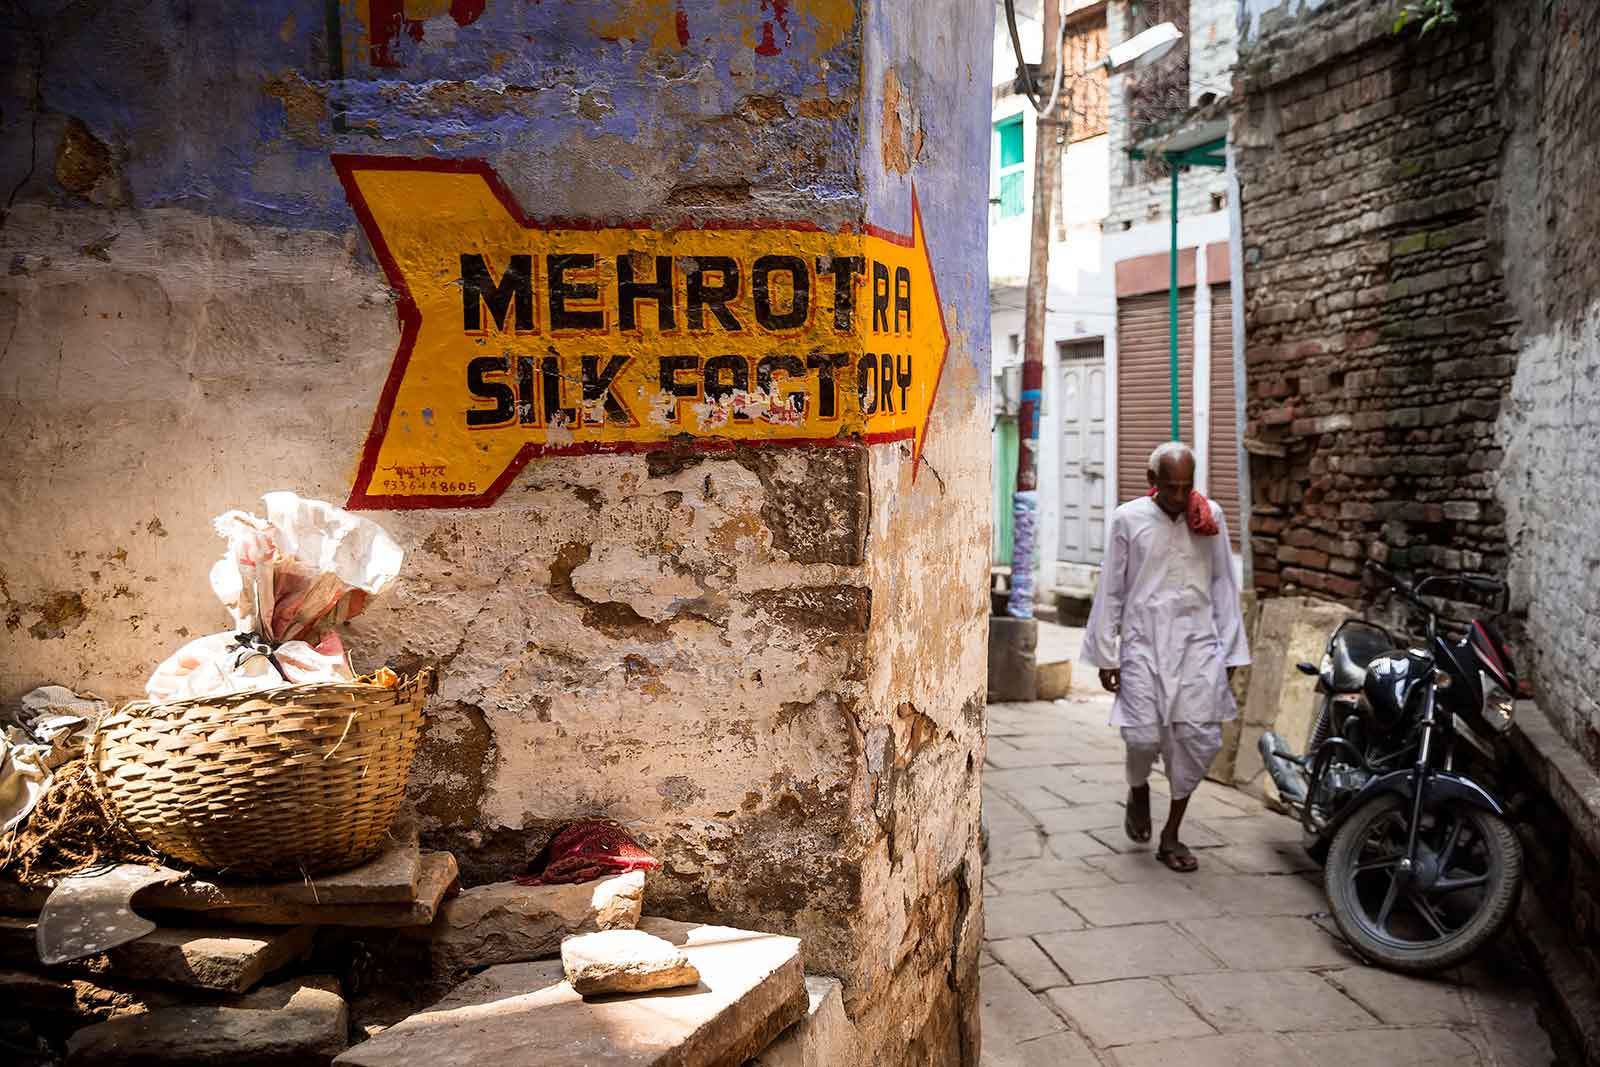 There is something new and colourful to explore around every corner in Varanasi.